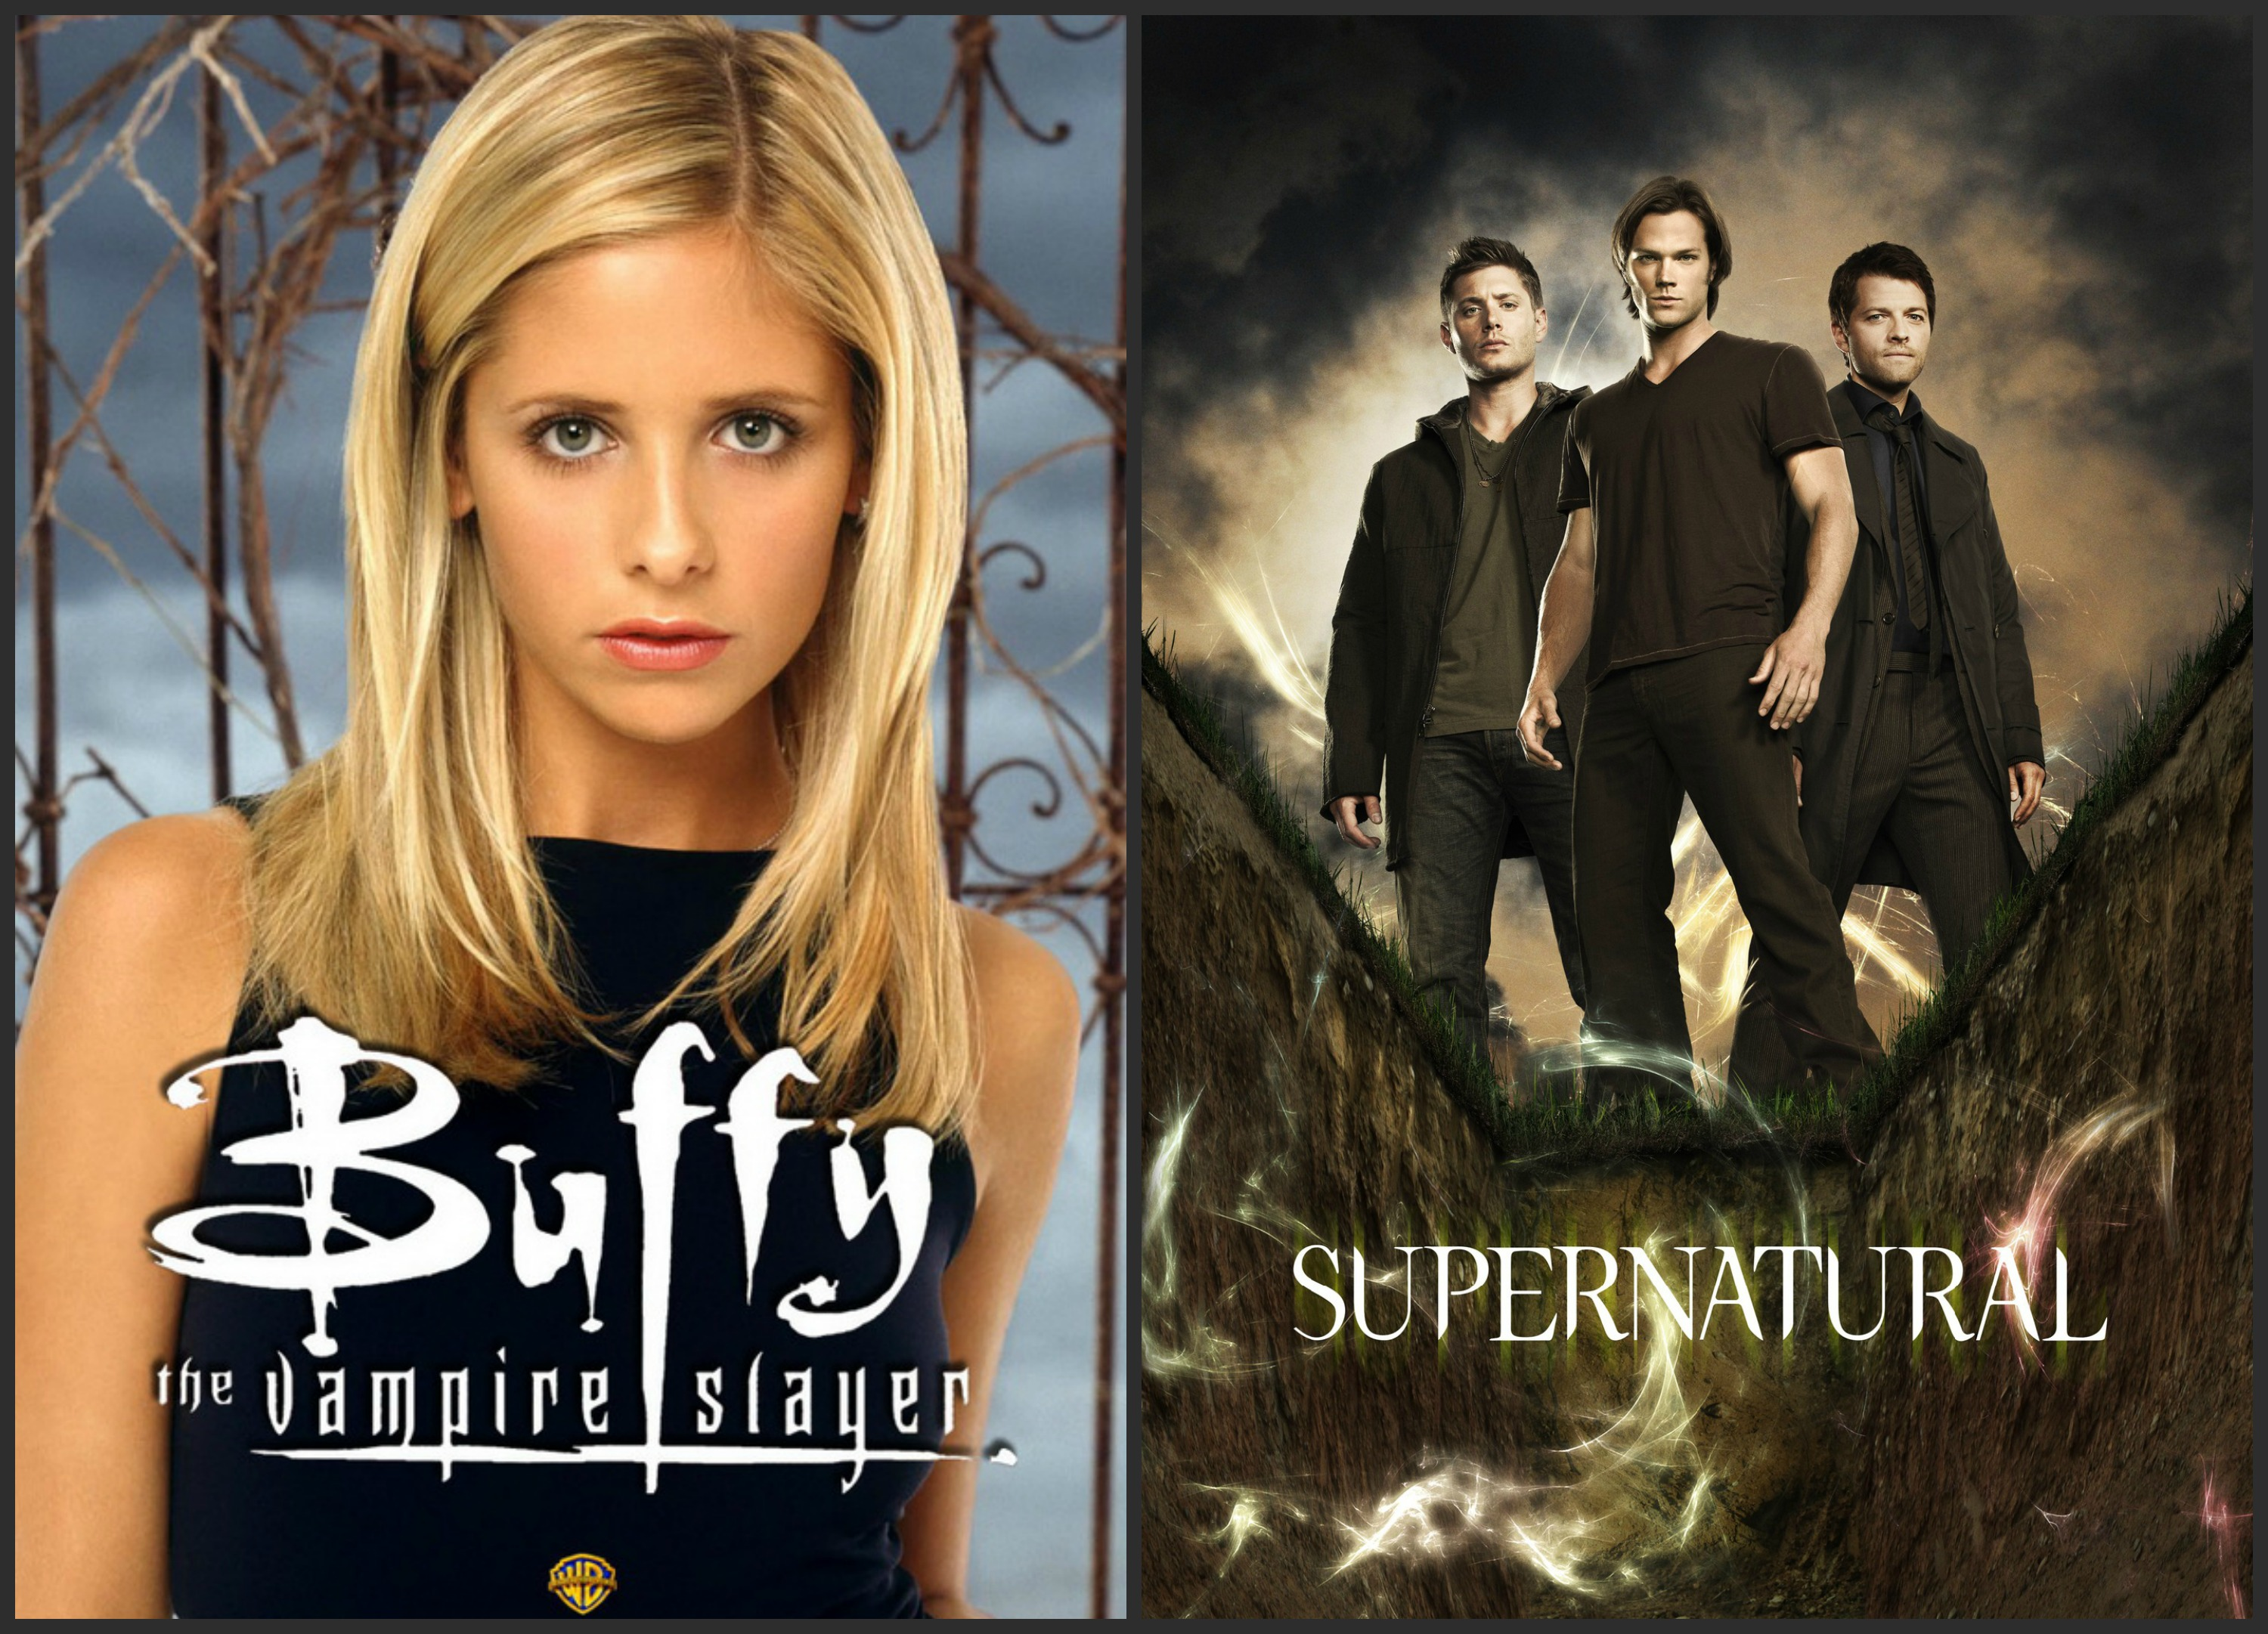 BuffySupernatural